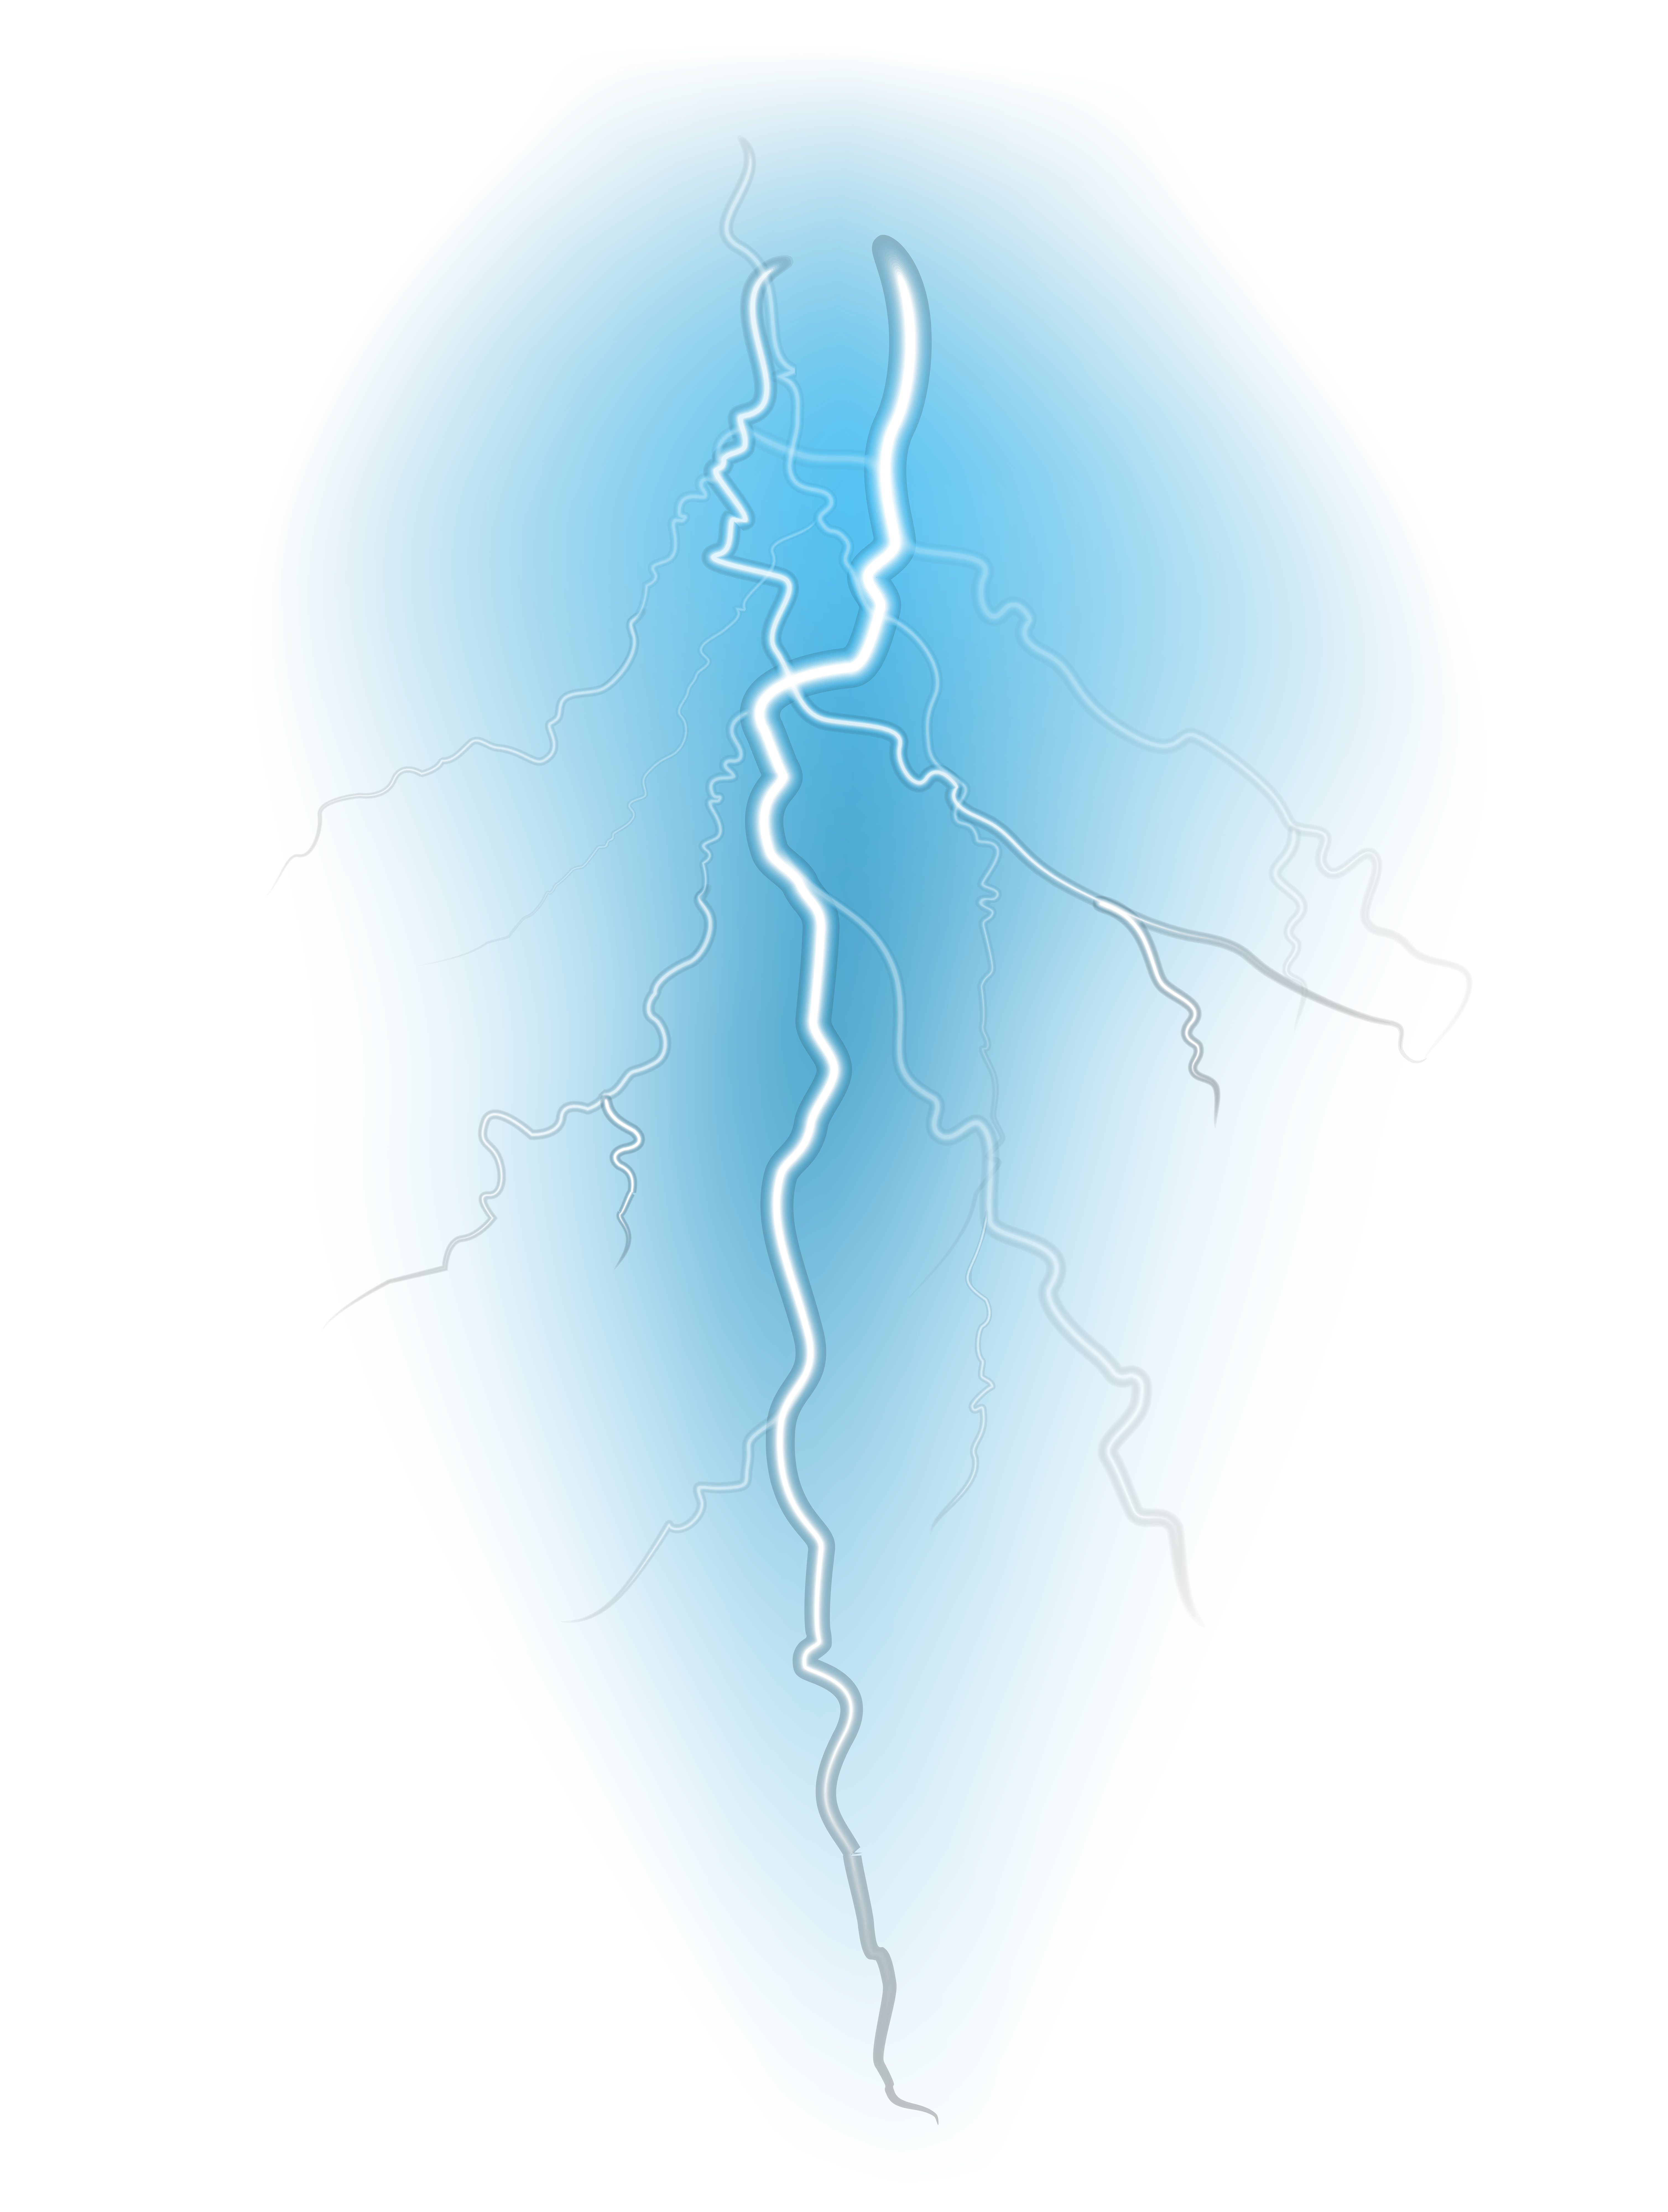 Lightning clipart blue.  collection of transparent